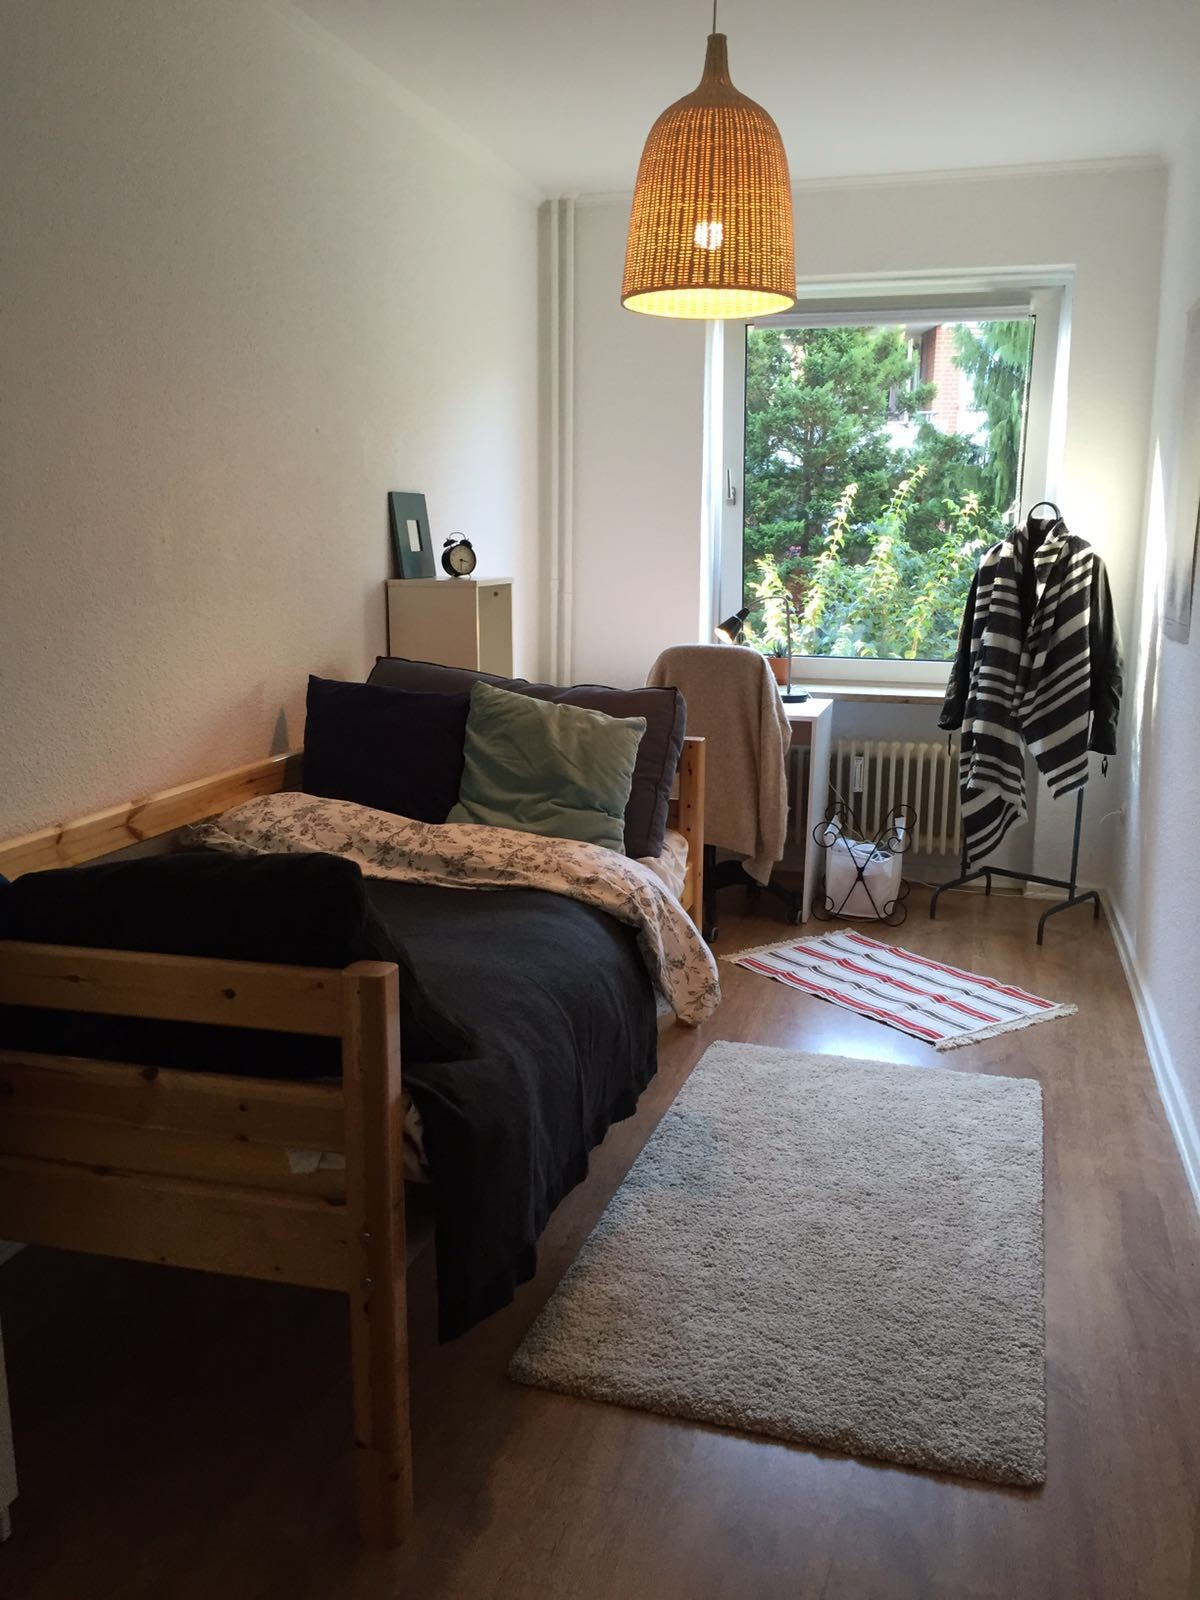 12m 2 Furnished Room In Shared Apartment With 2 Students